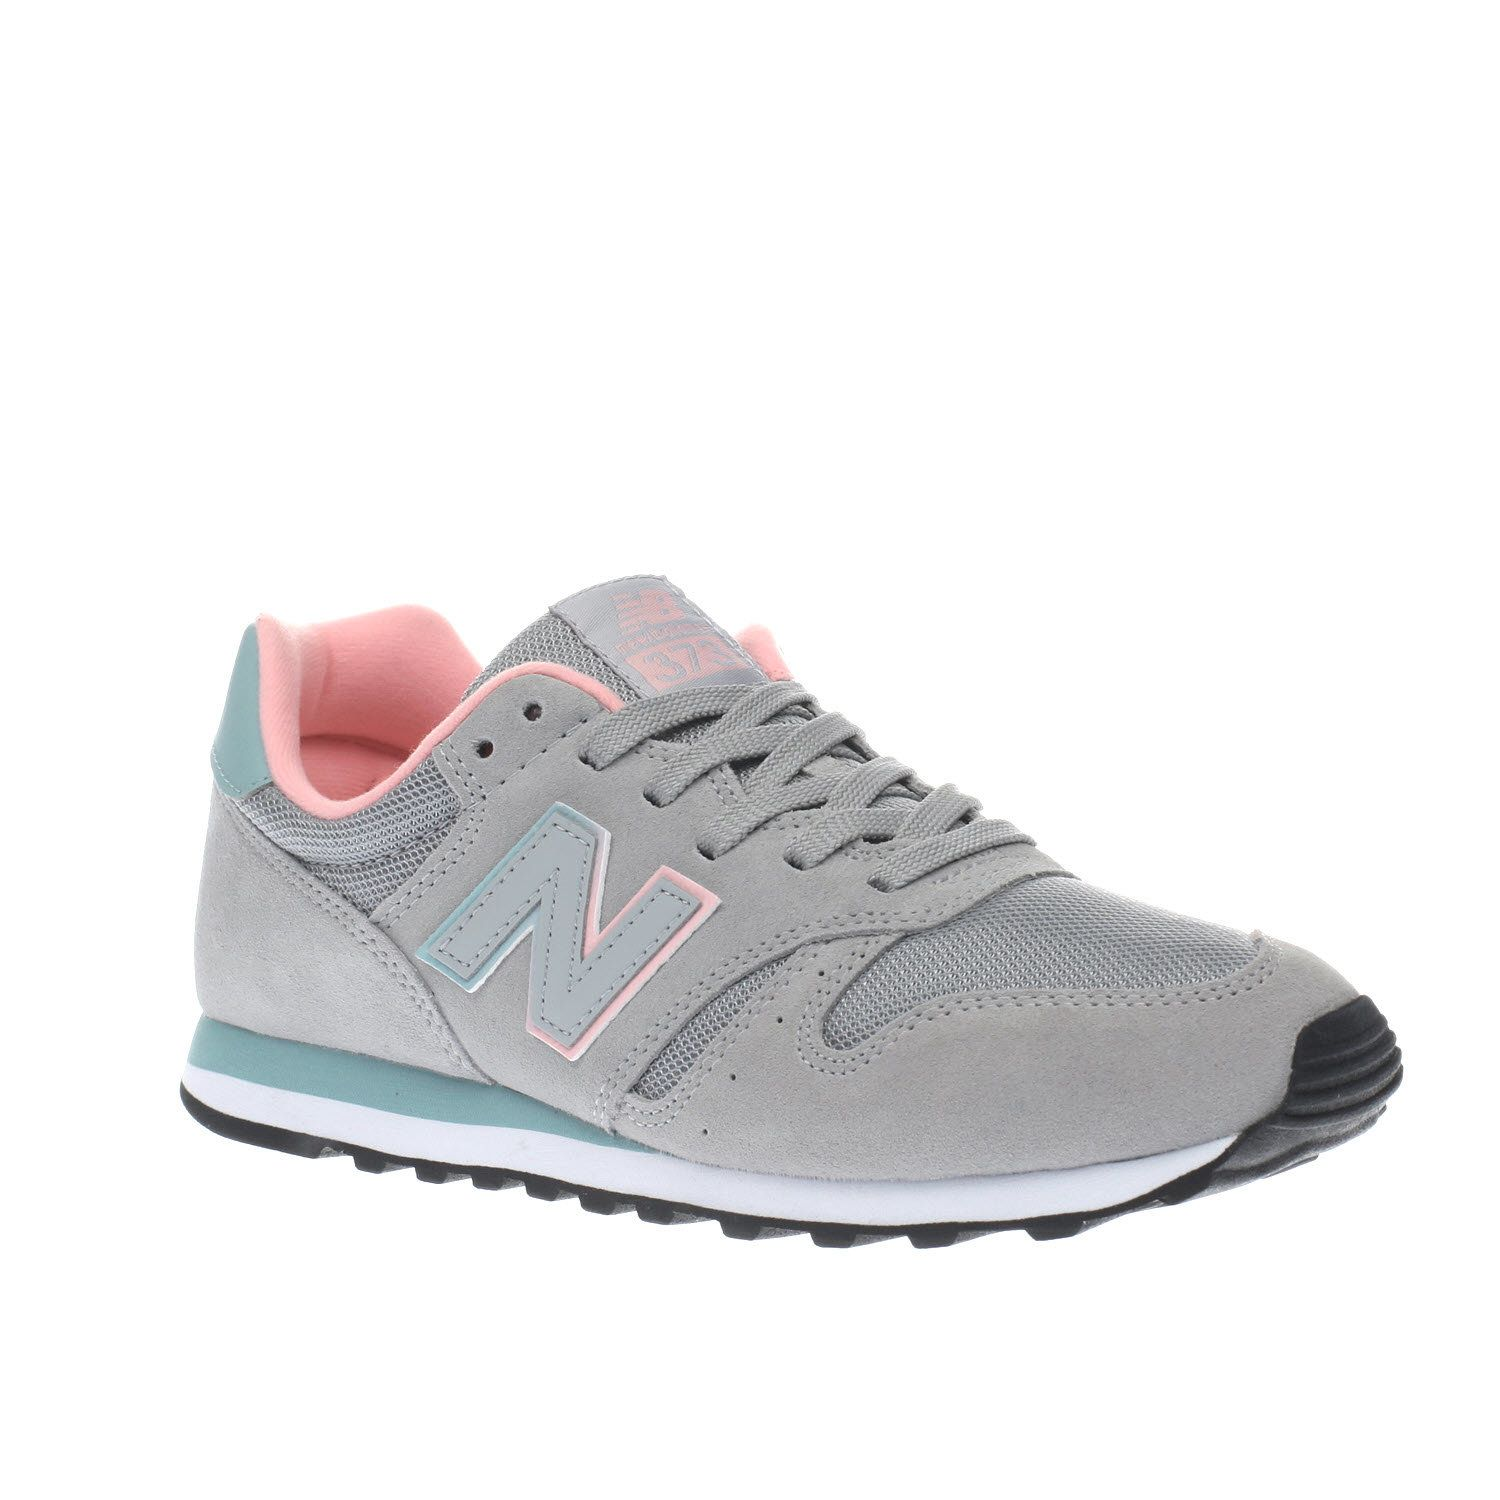 new balance 373 grey blue